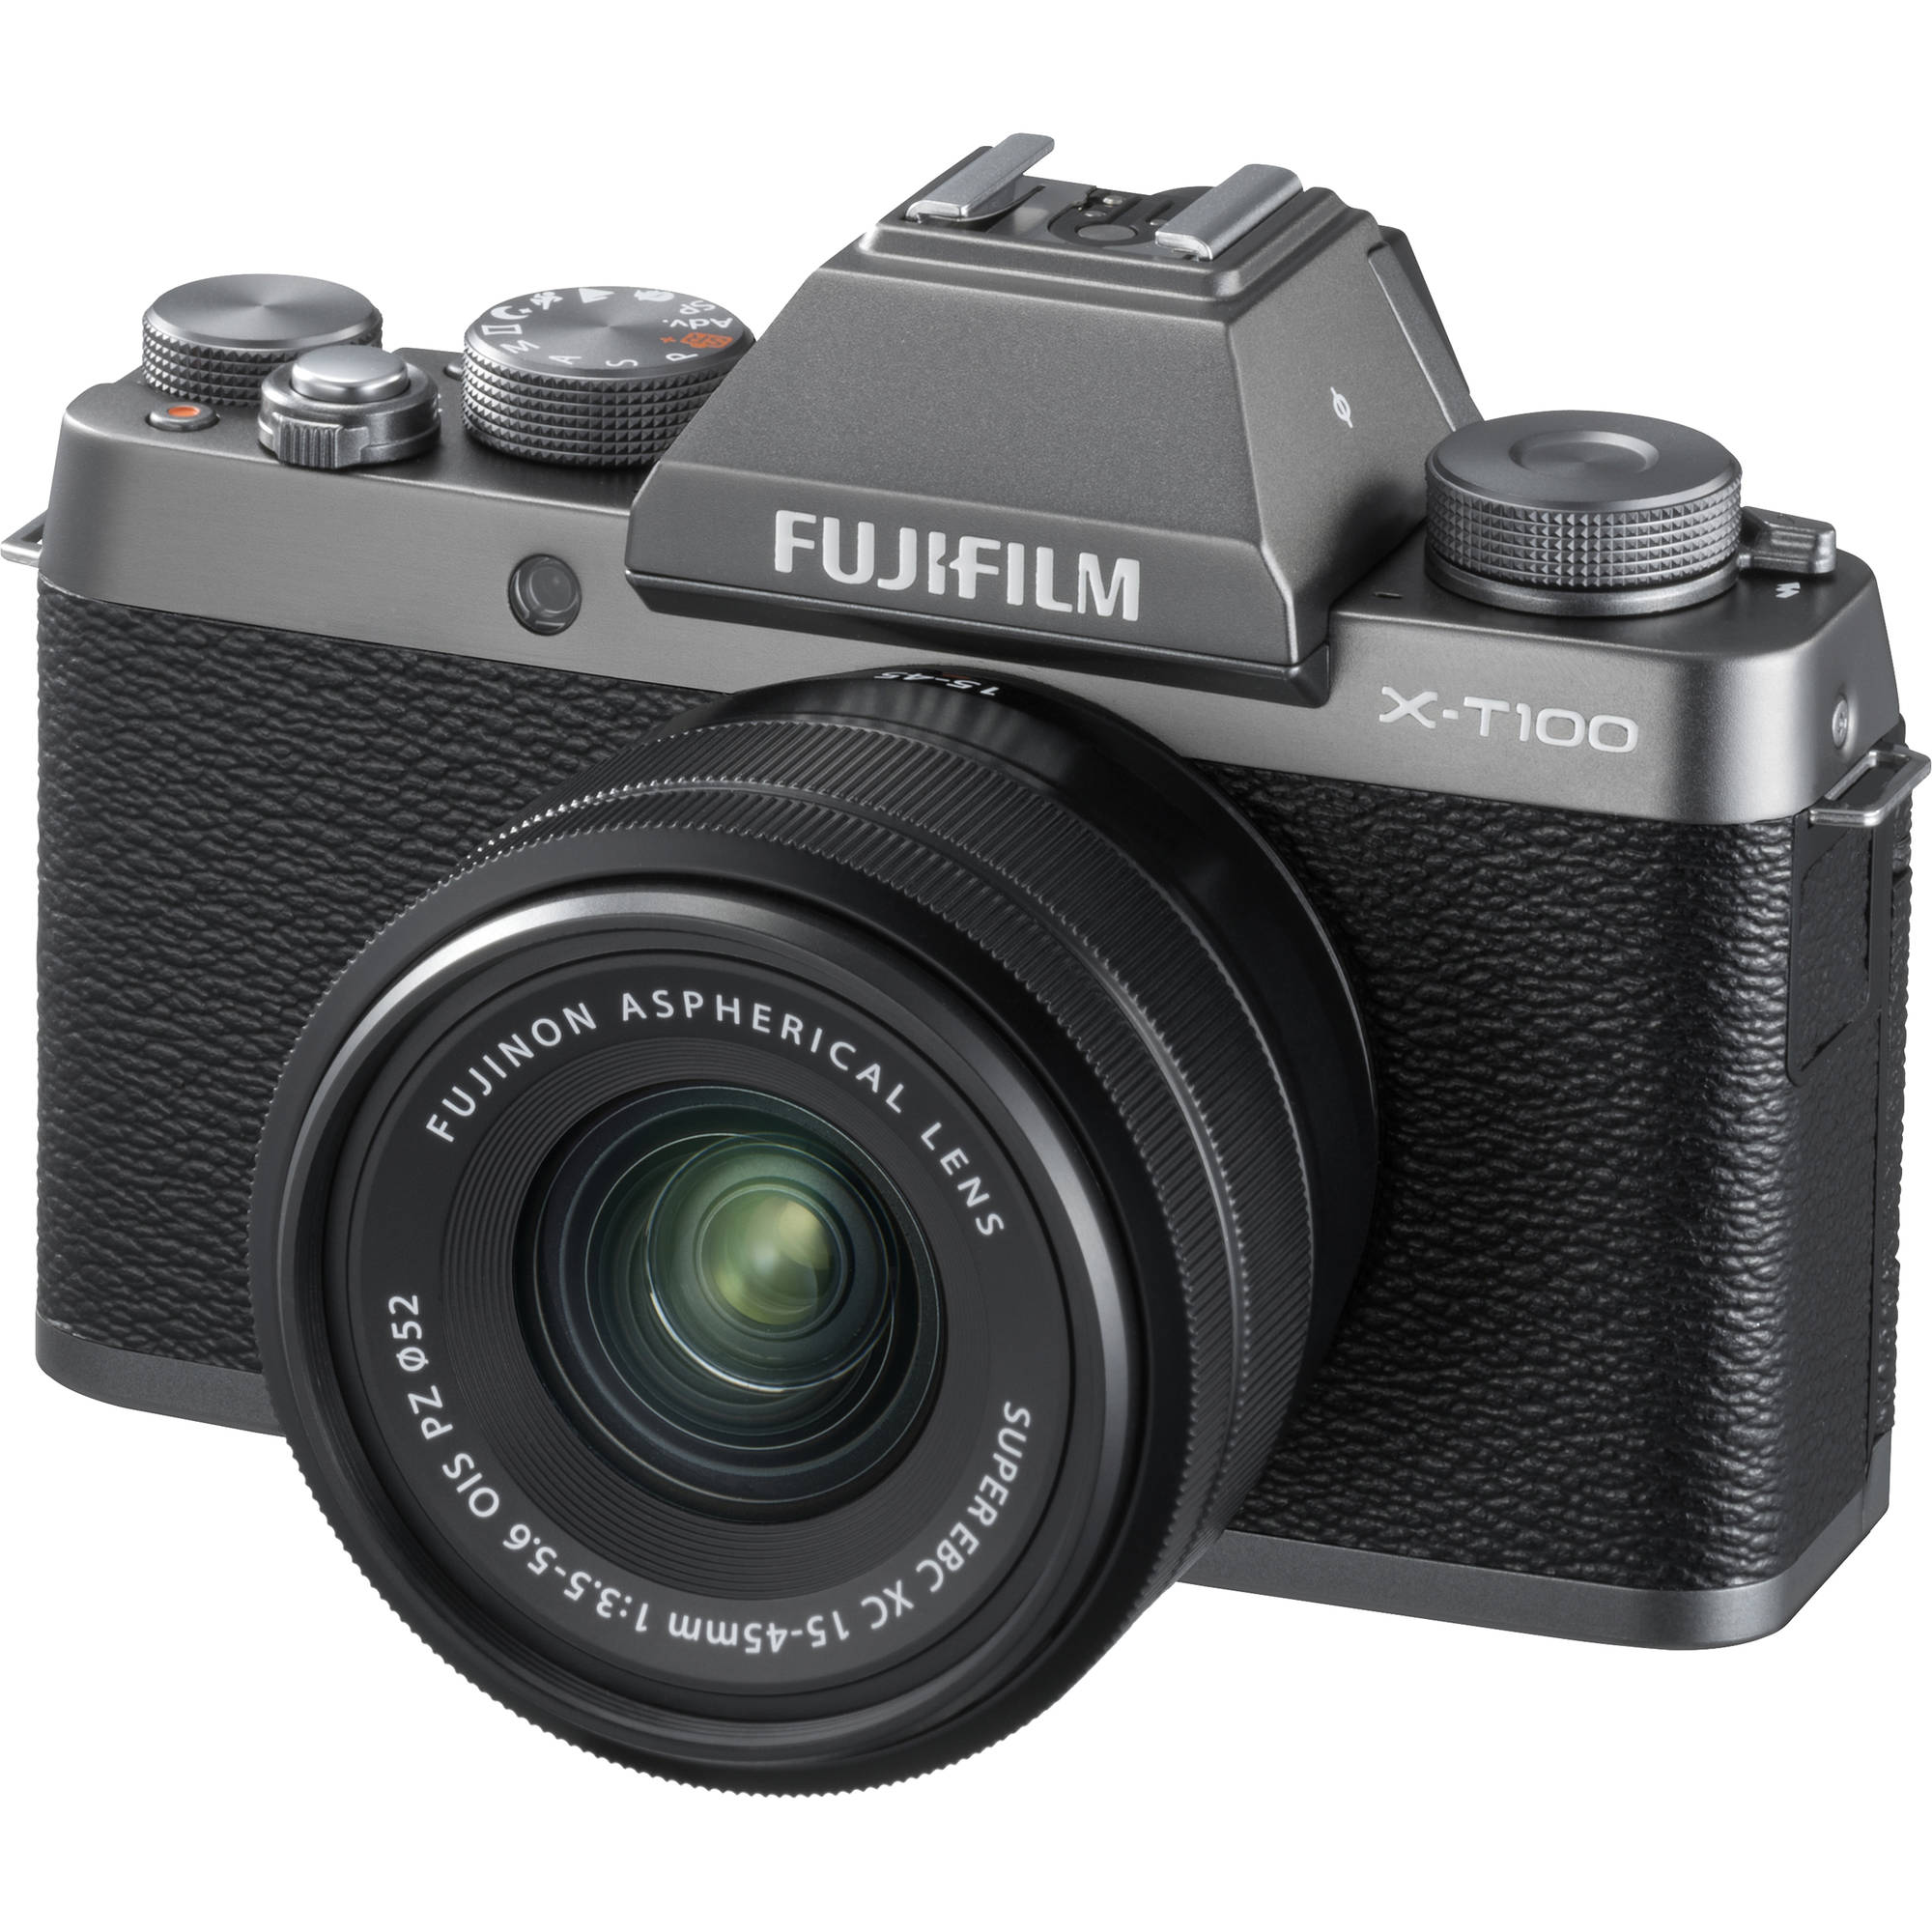 Is the Fujifilm X-T100 the Perfect Beginner's Travel Camera?